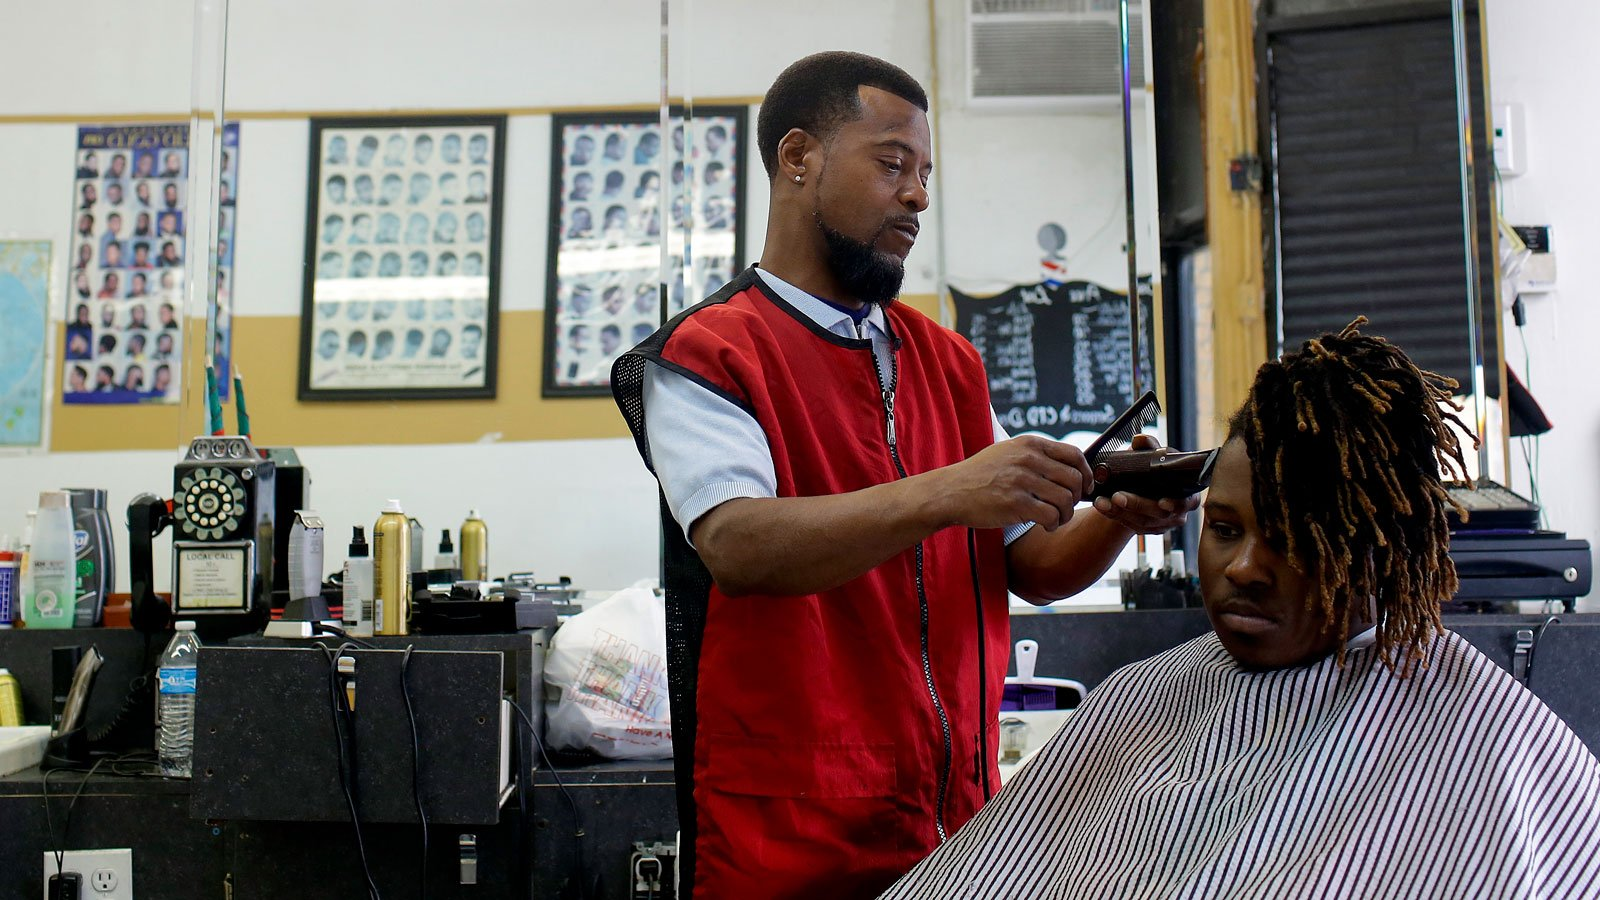 Man getting haircut at barbershop